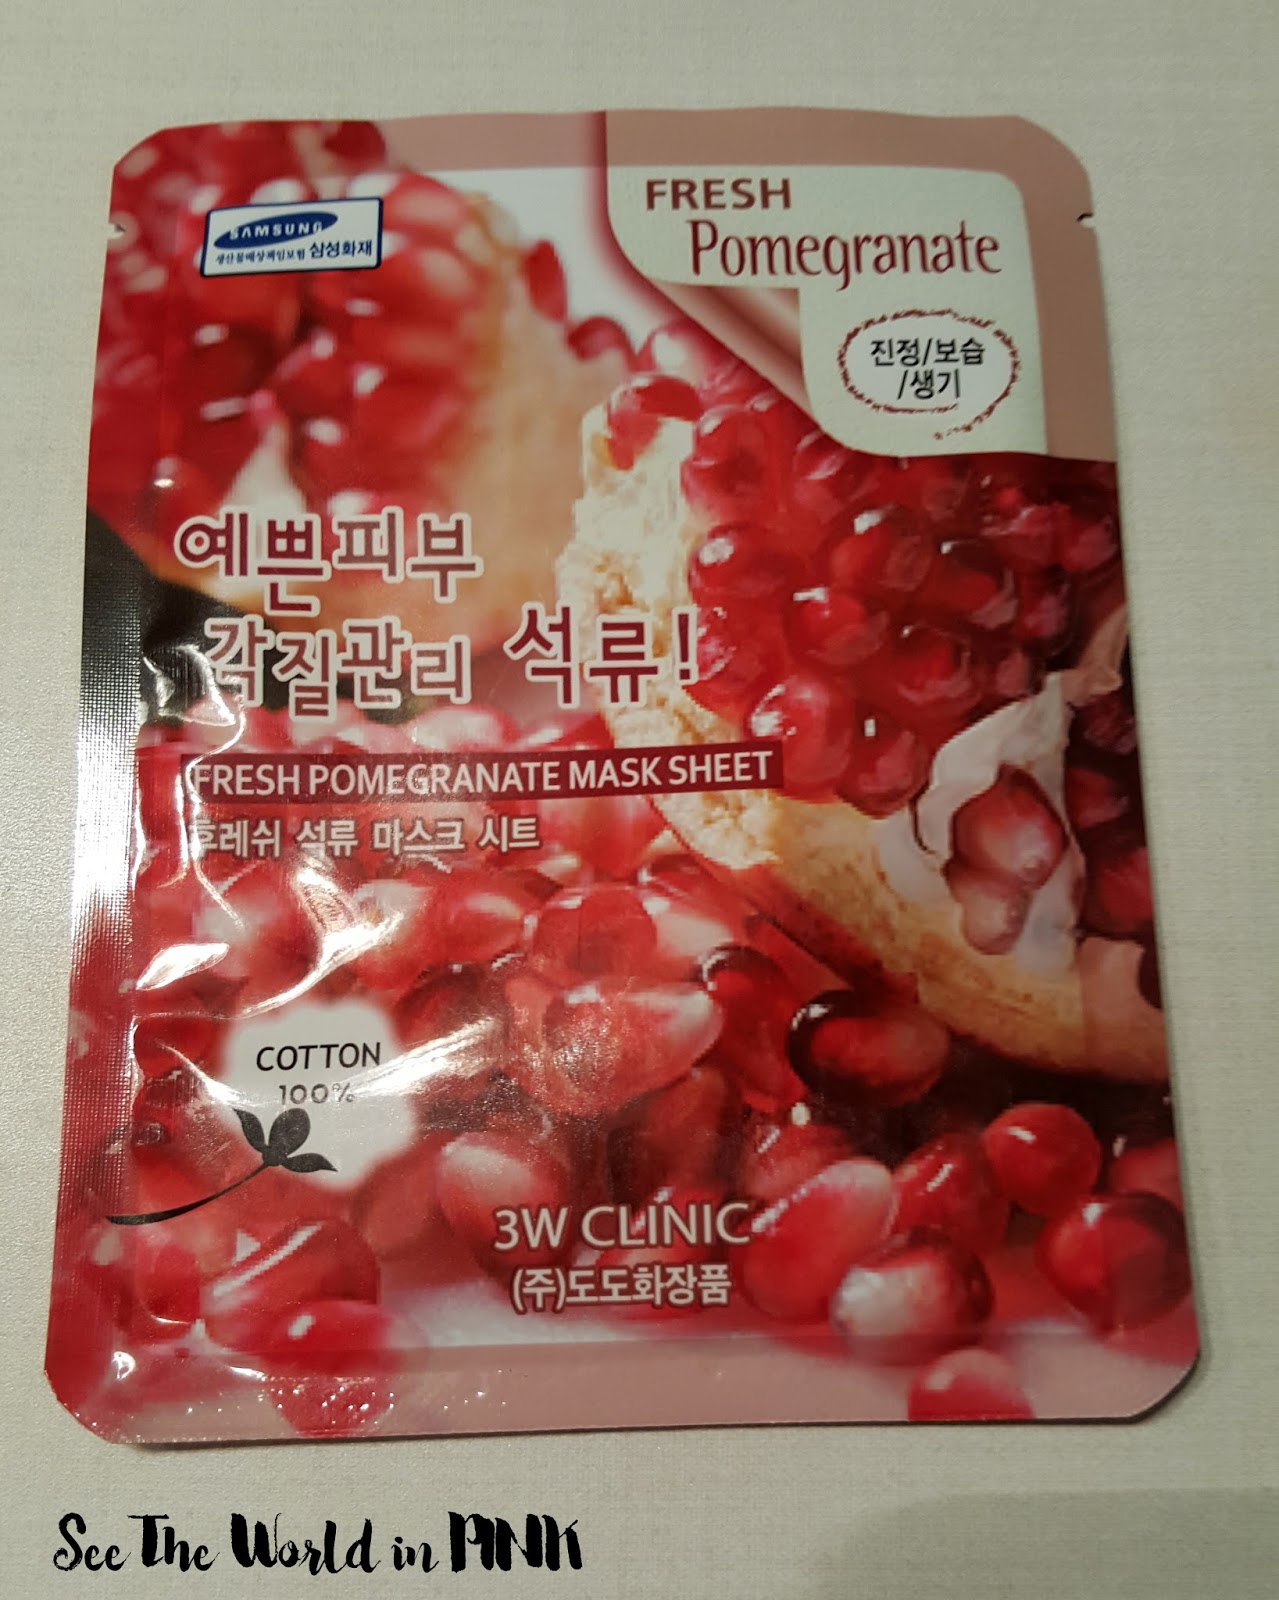 3w clinic fresh pomegranate mask sheet